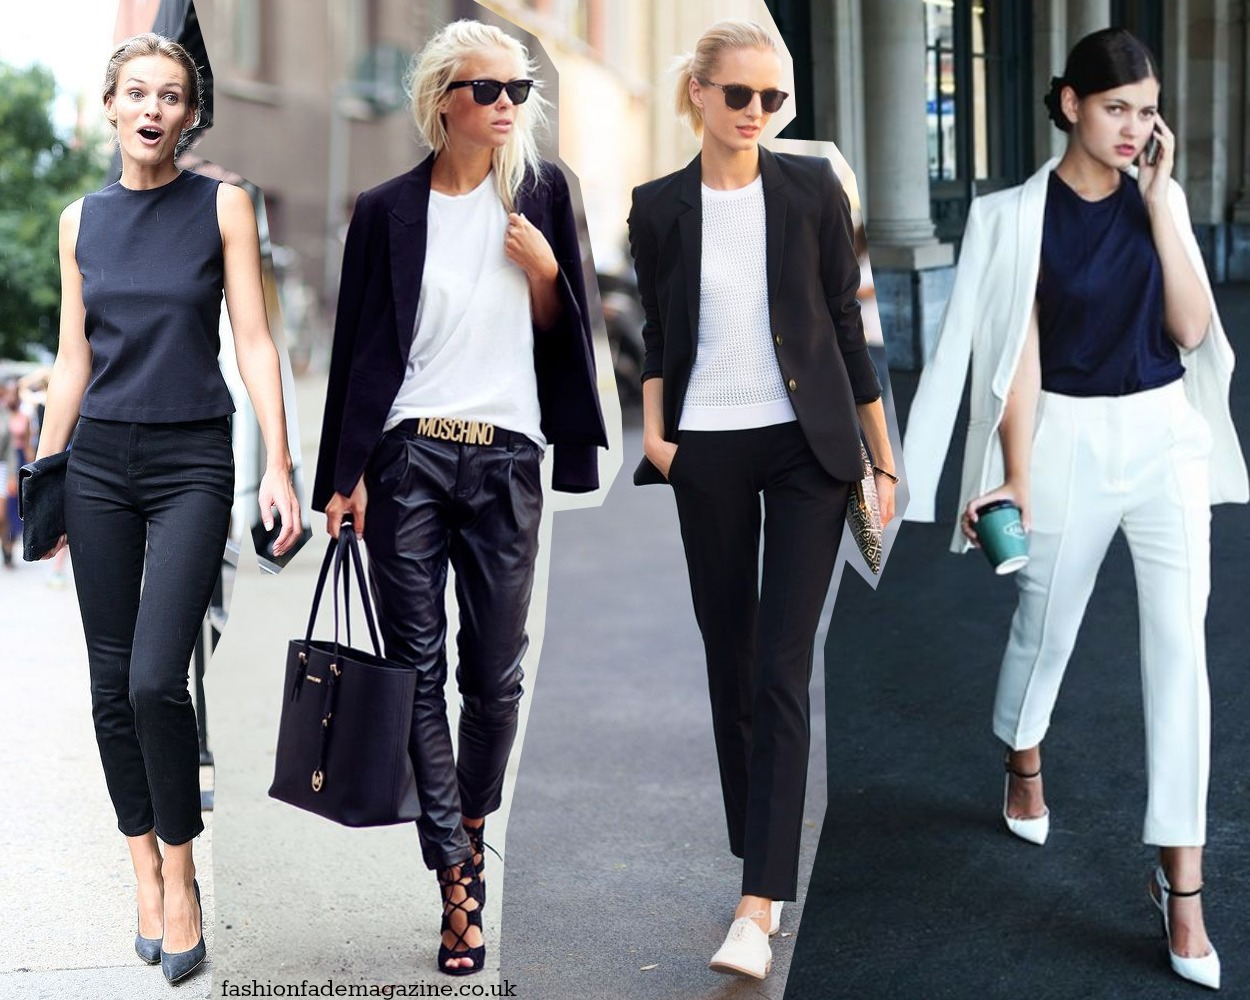 monochrome trend outfits street style 2015 fashion looks magazine blog black and white mimimal